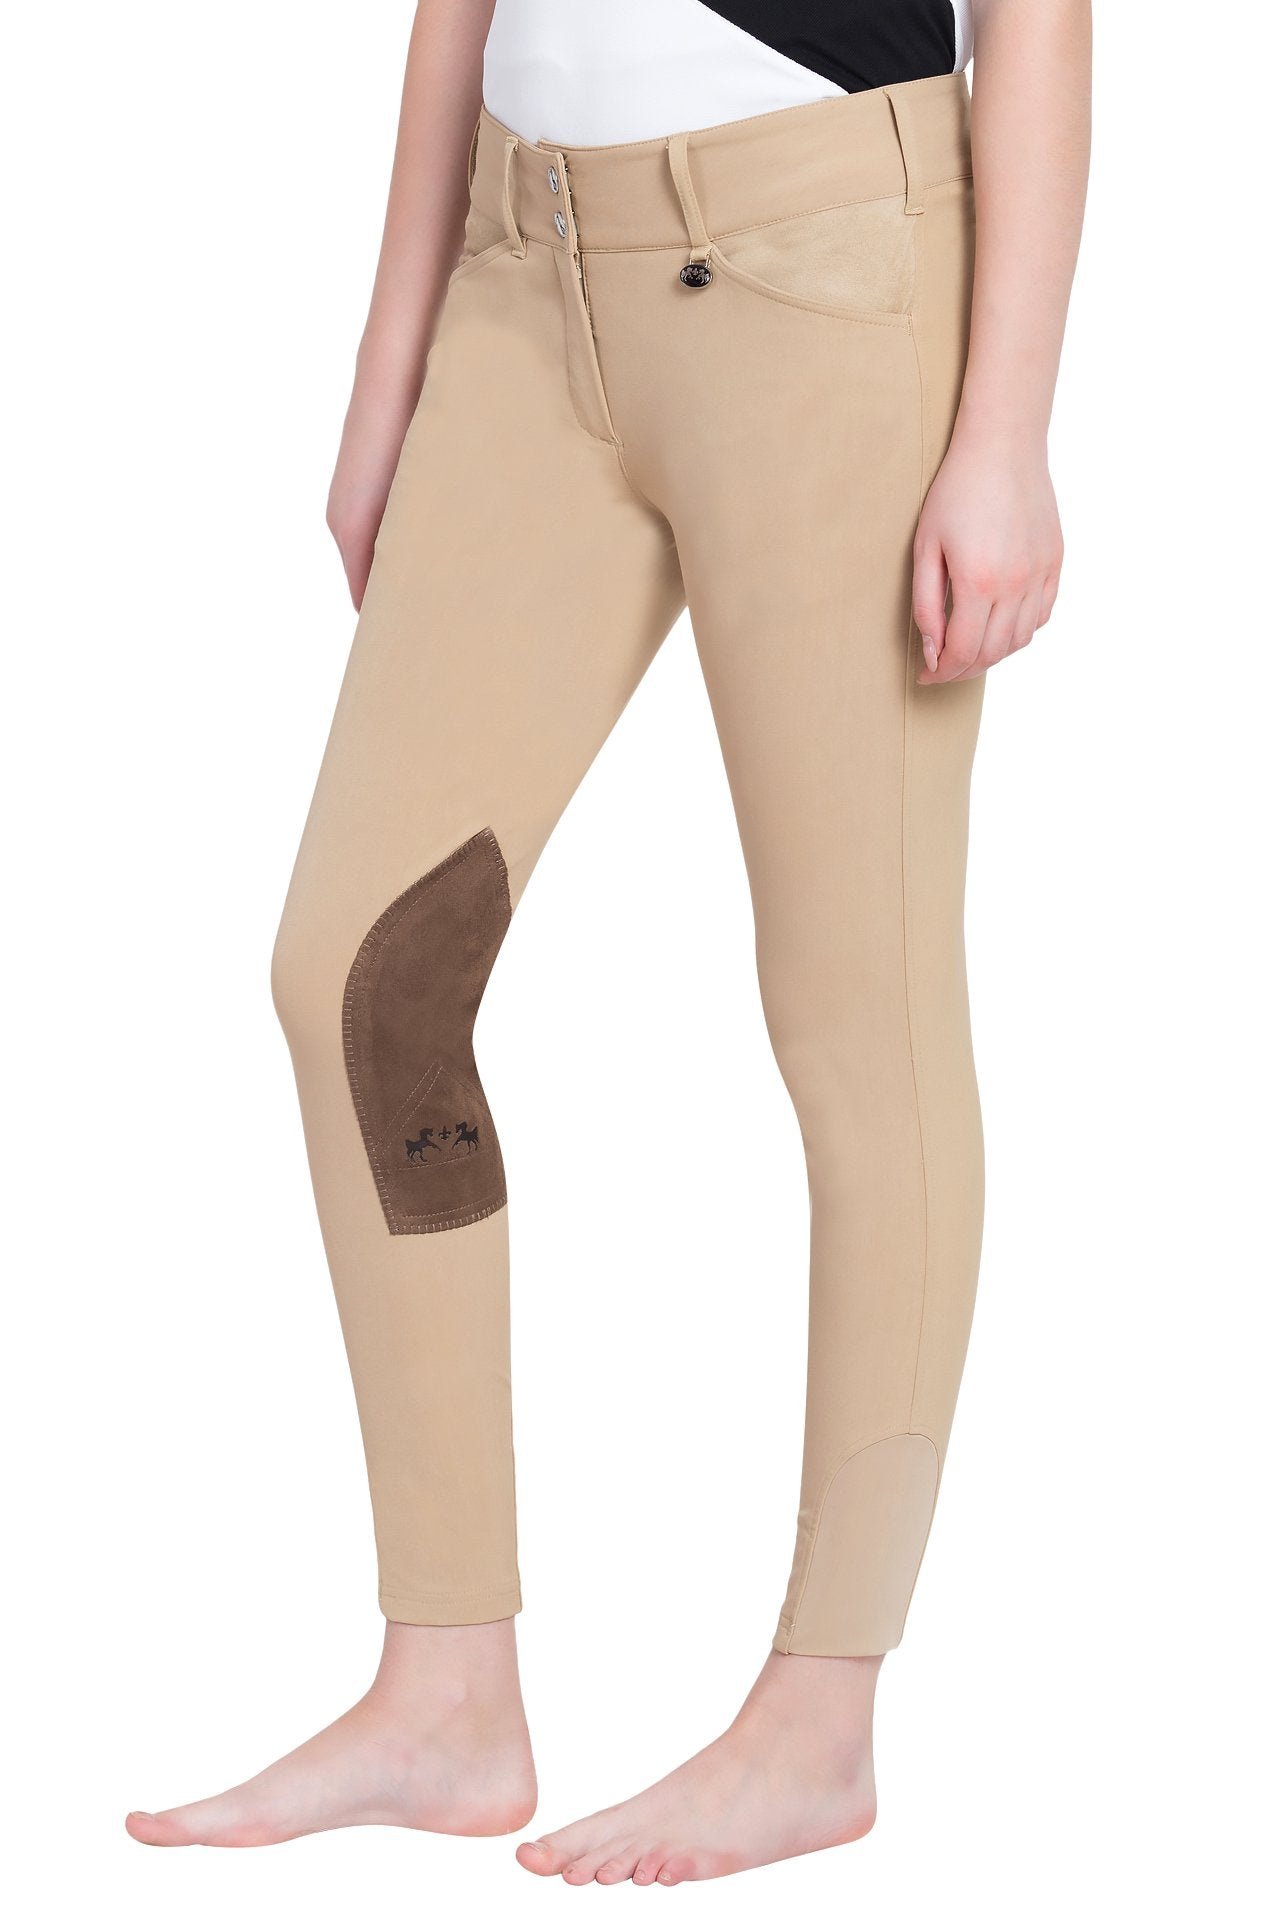 Equine Couture Ladies Coolmax Champion Knee Patch Breeches_1